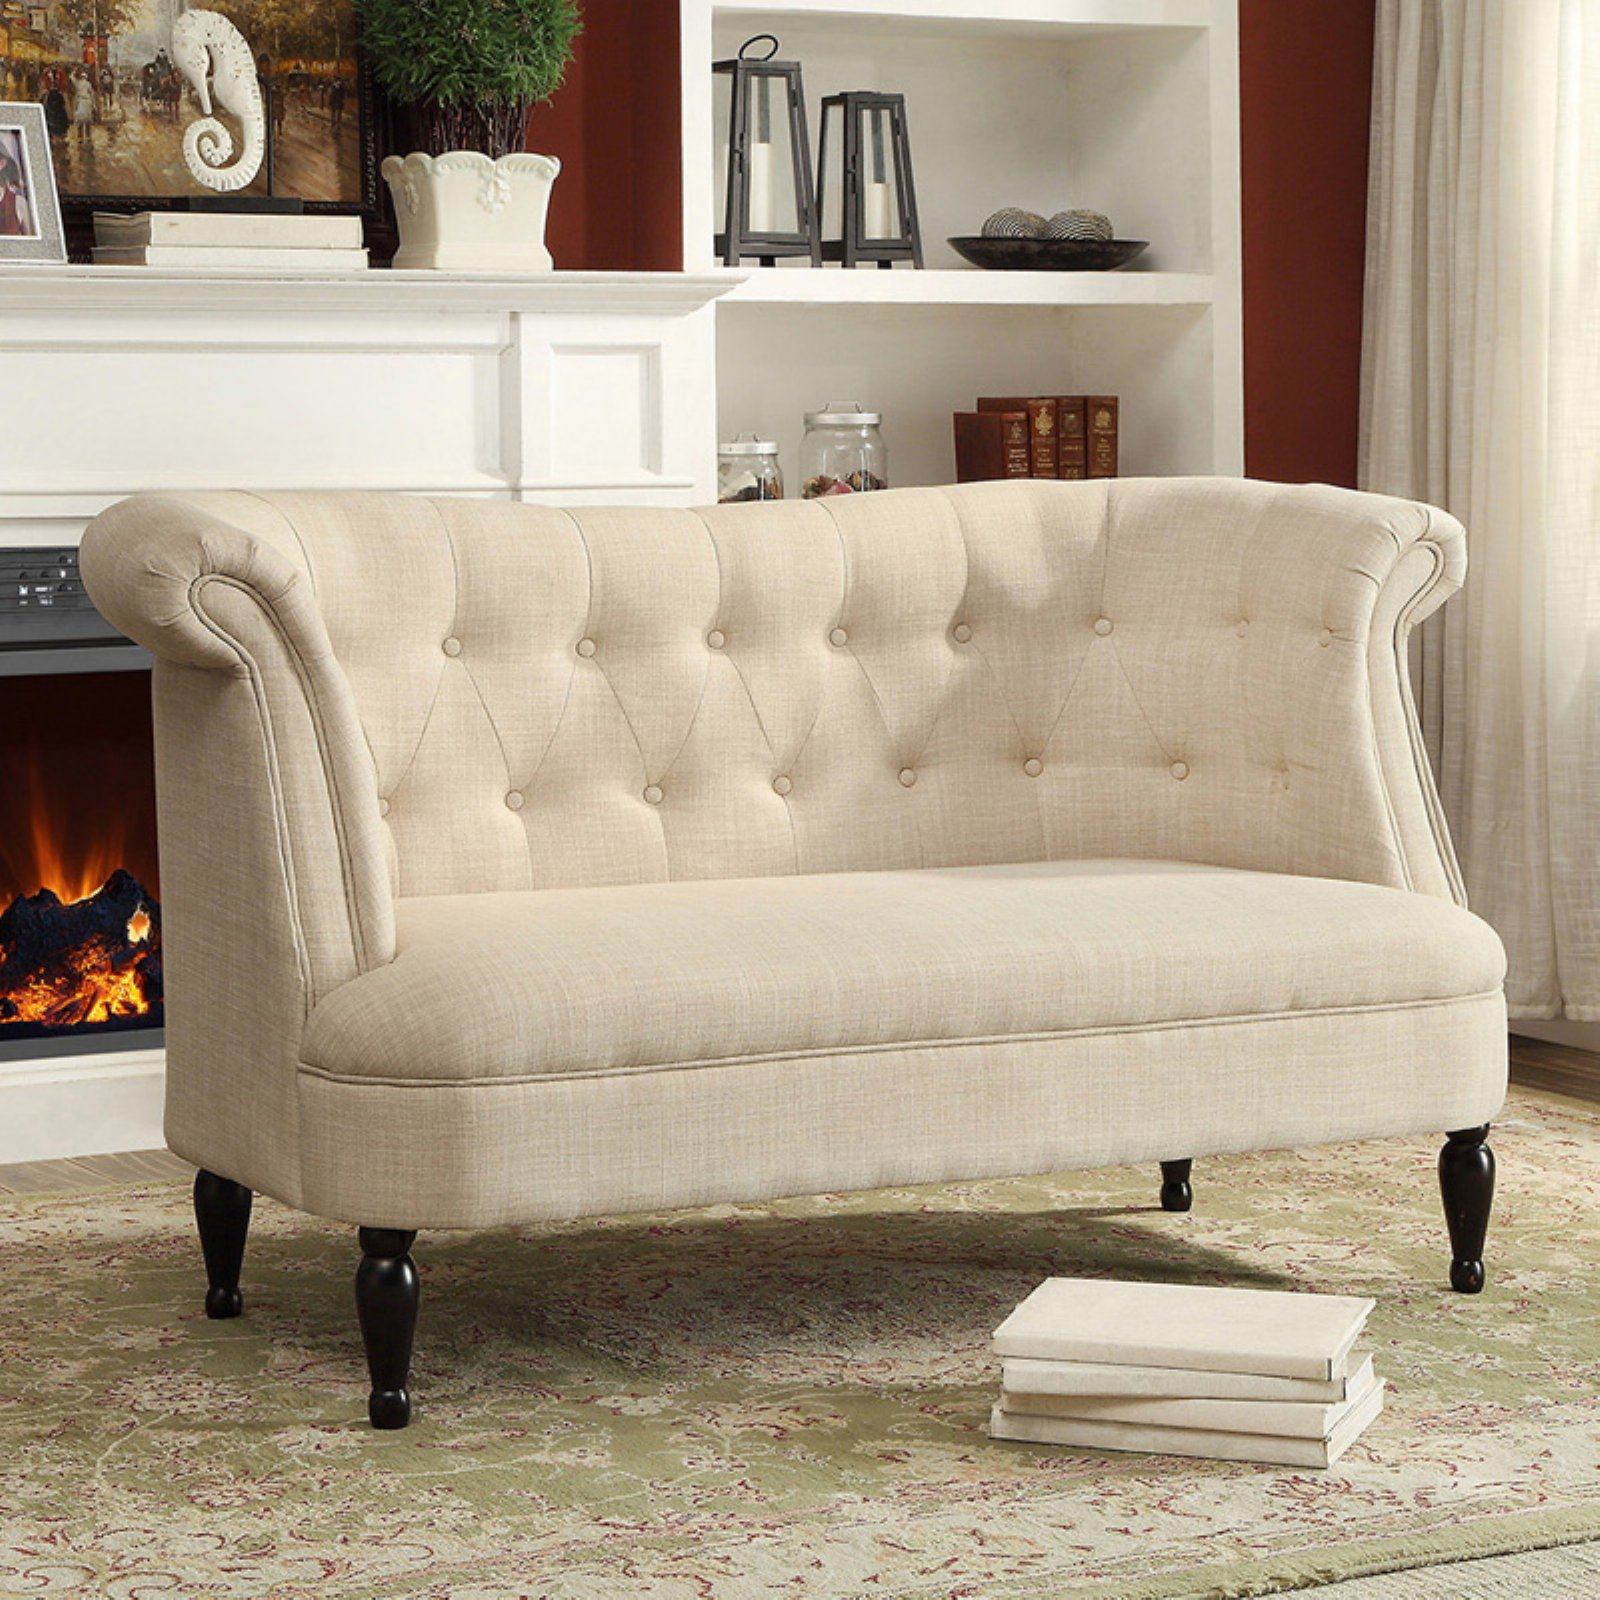 Baxton Studio Erica Victorian Style Contemporary Beige Linen Fabric Upholstered Button-Tufted 2-Seater Loveseat by Baxton Studio